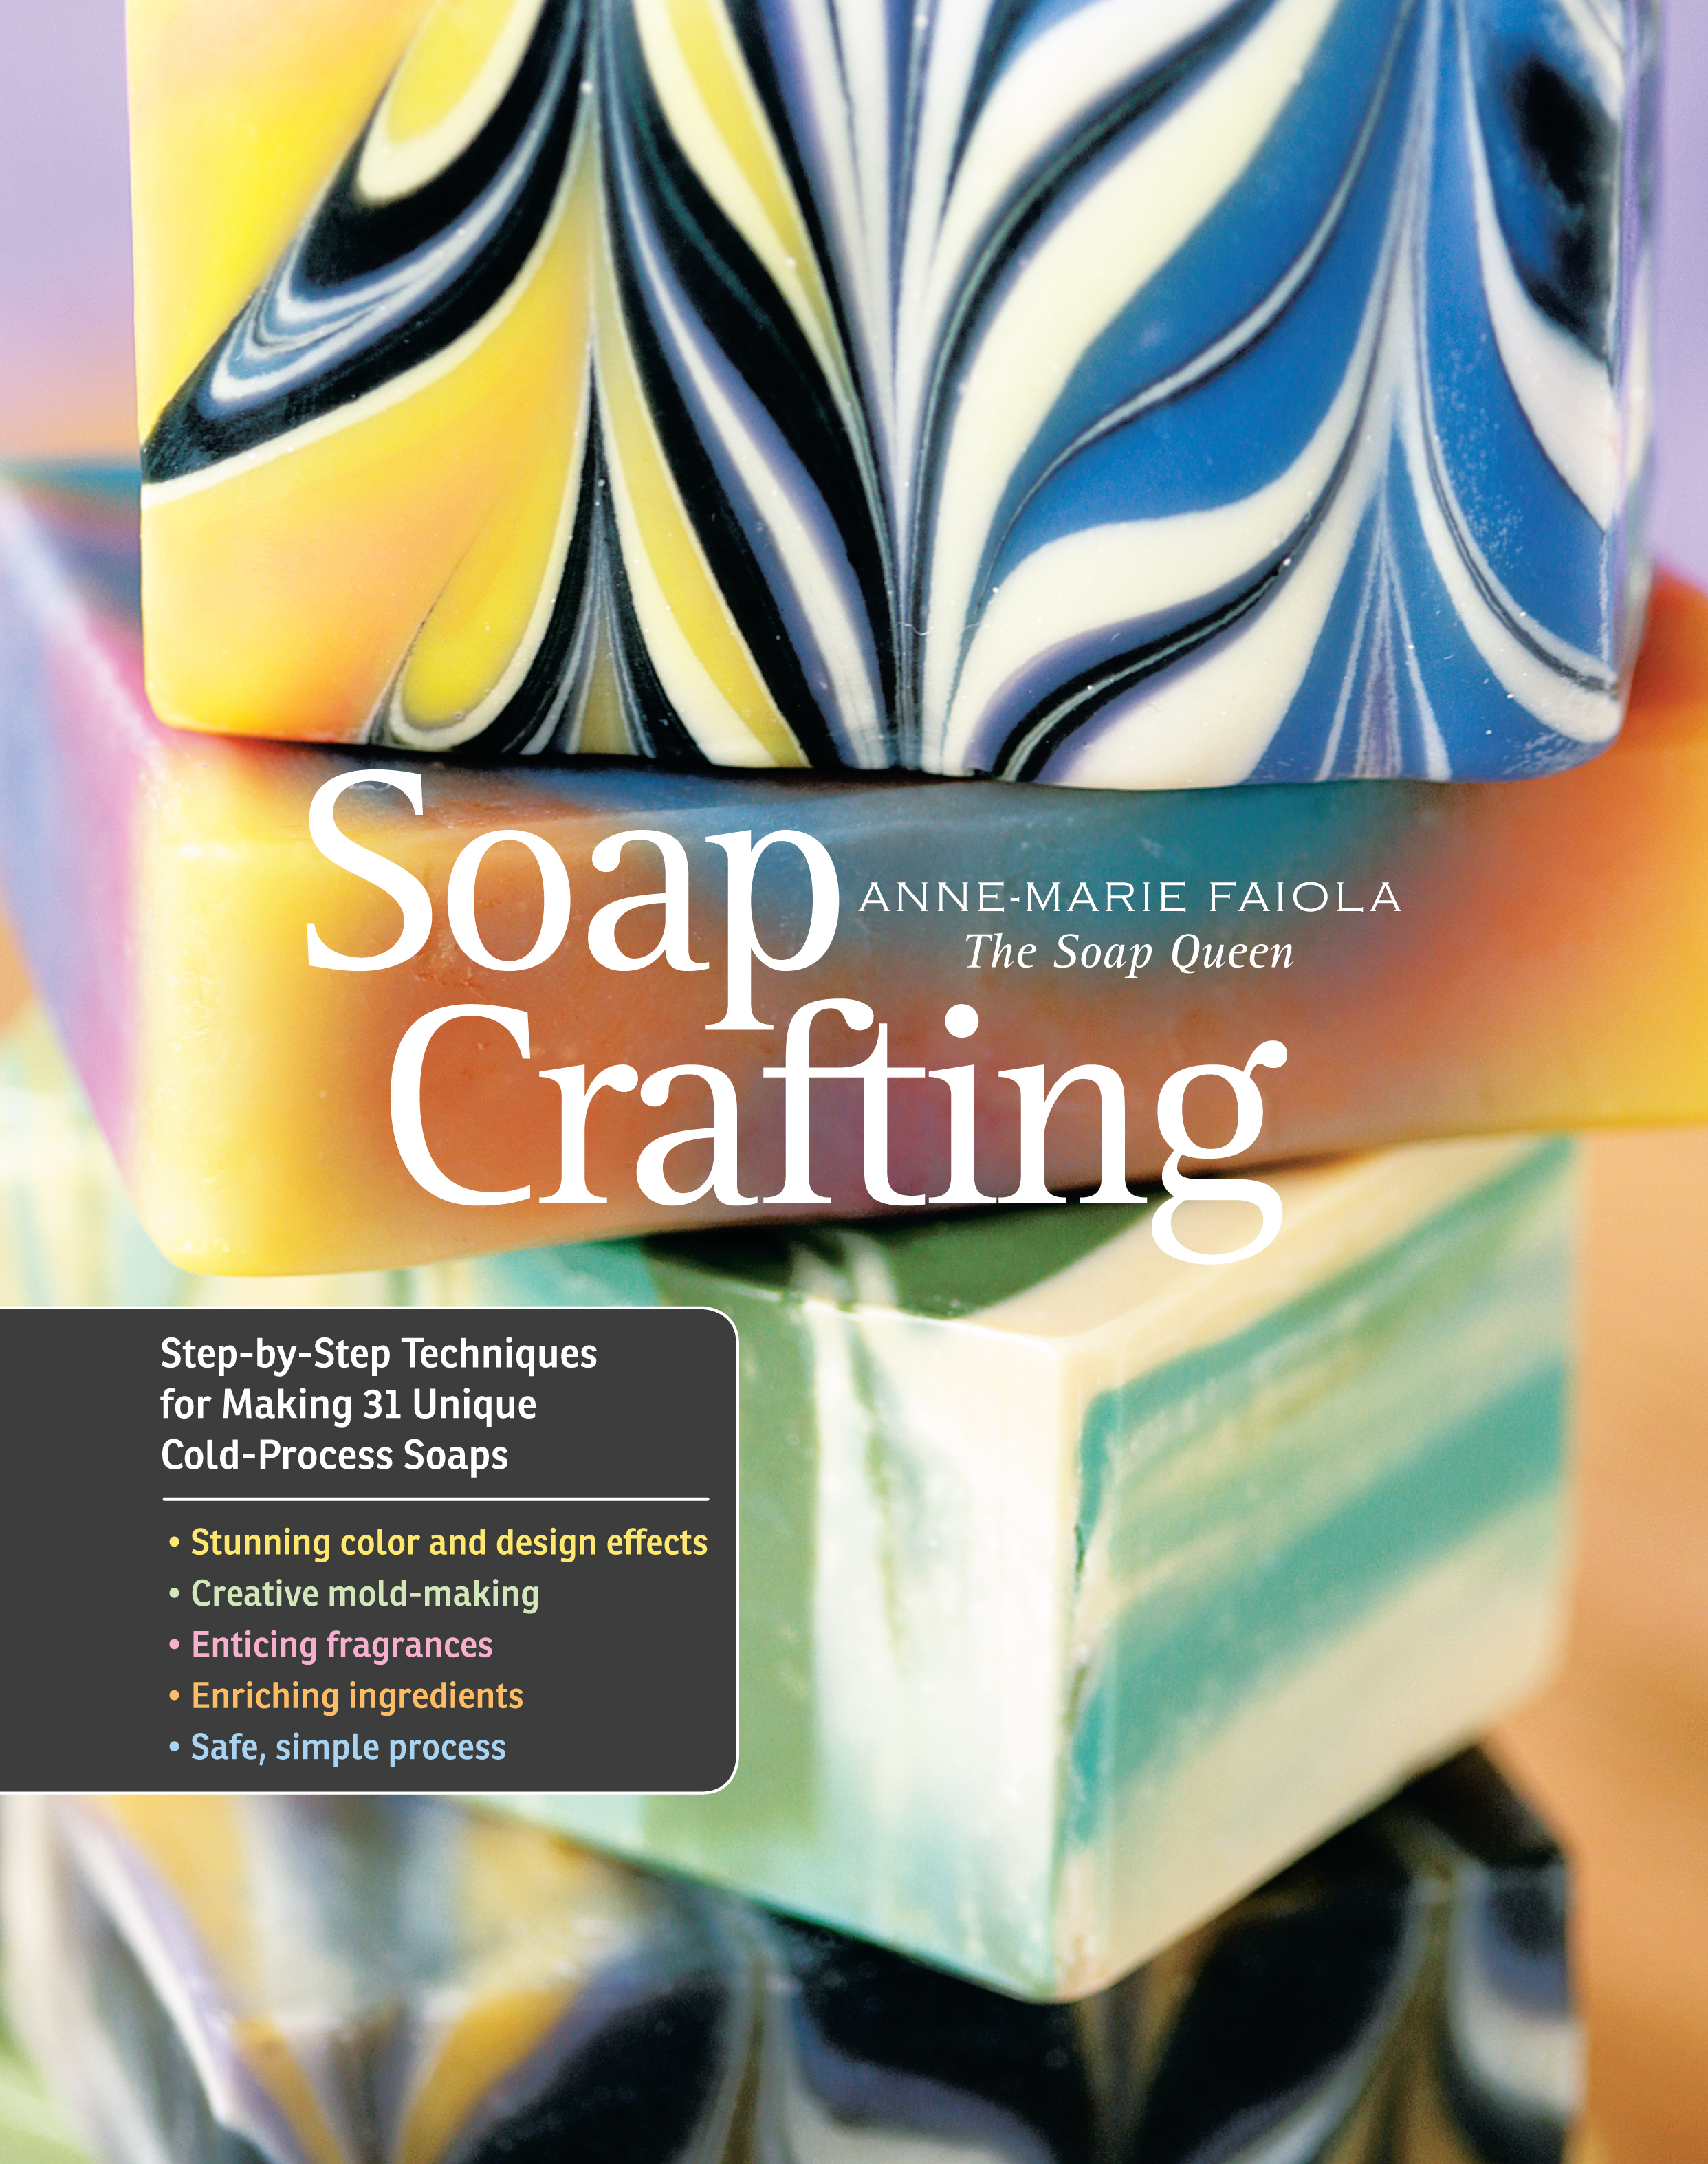 Soap Crafting Step-by-Step Techniques for Making 31 Unique Cold-Process Soaps - Anne-Marie Faiola